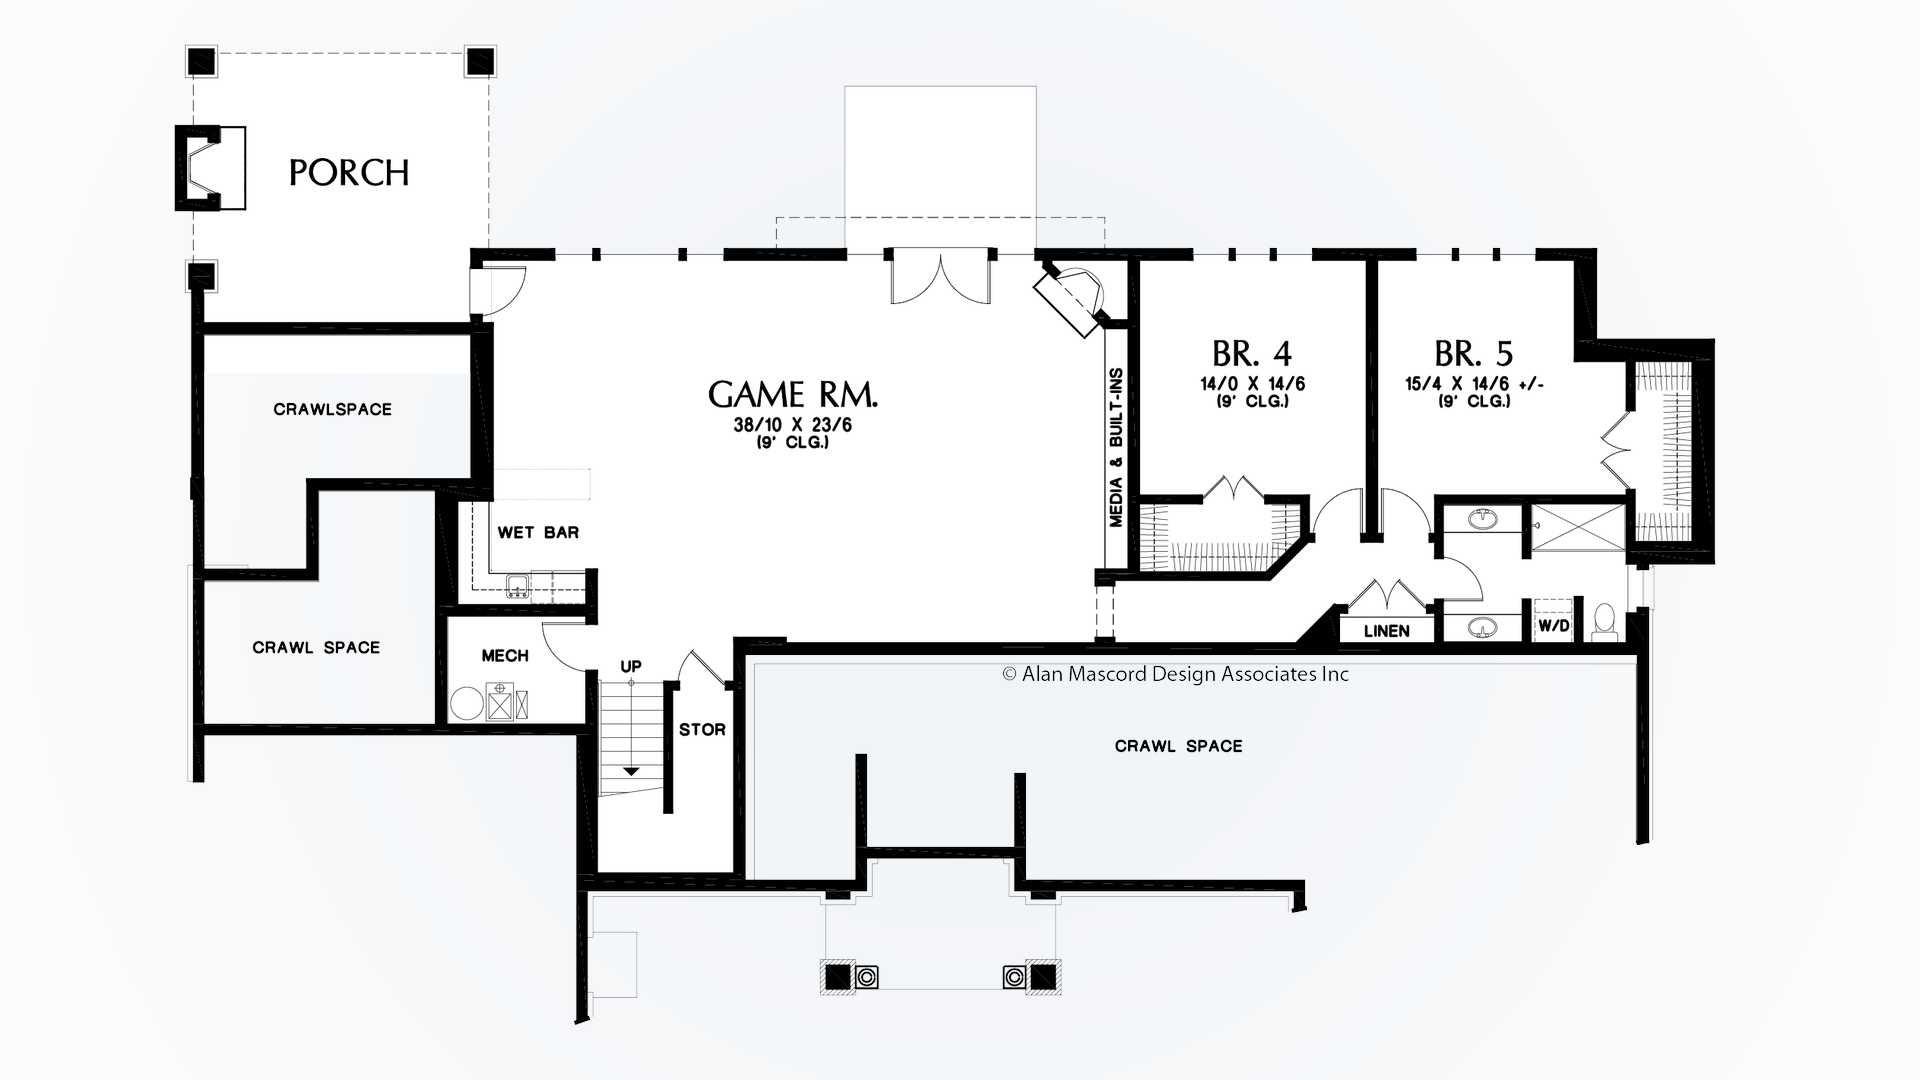 Mascord house plan 1415 the bremen for Crawl space house plans